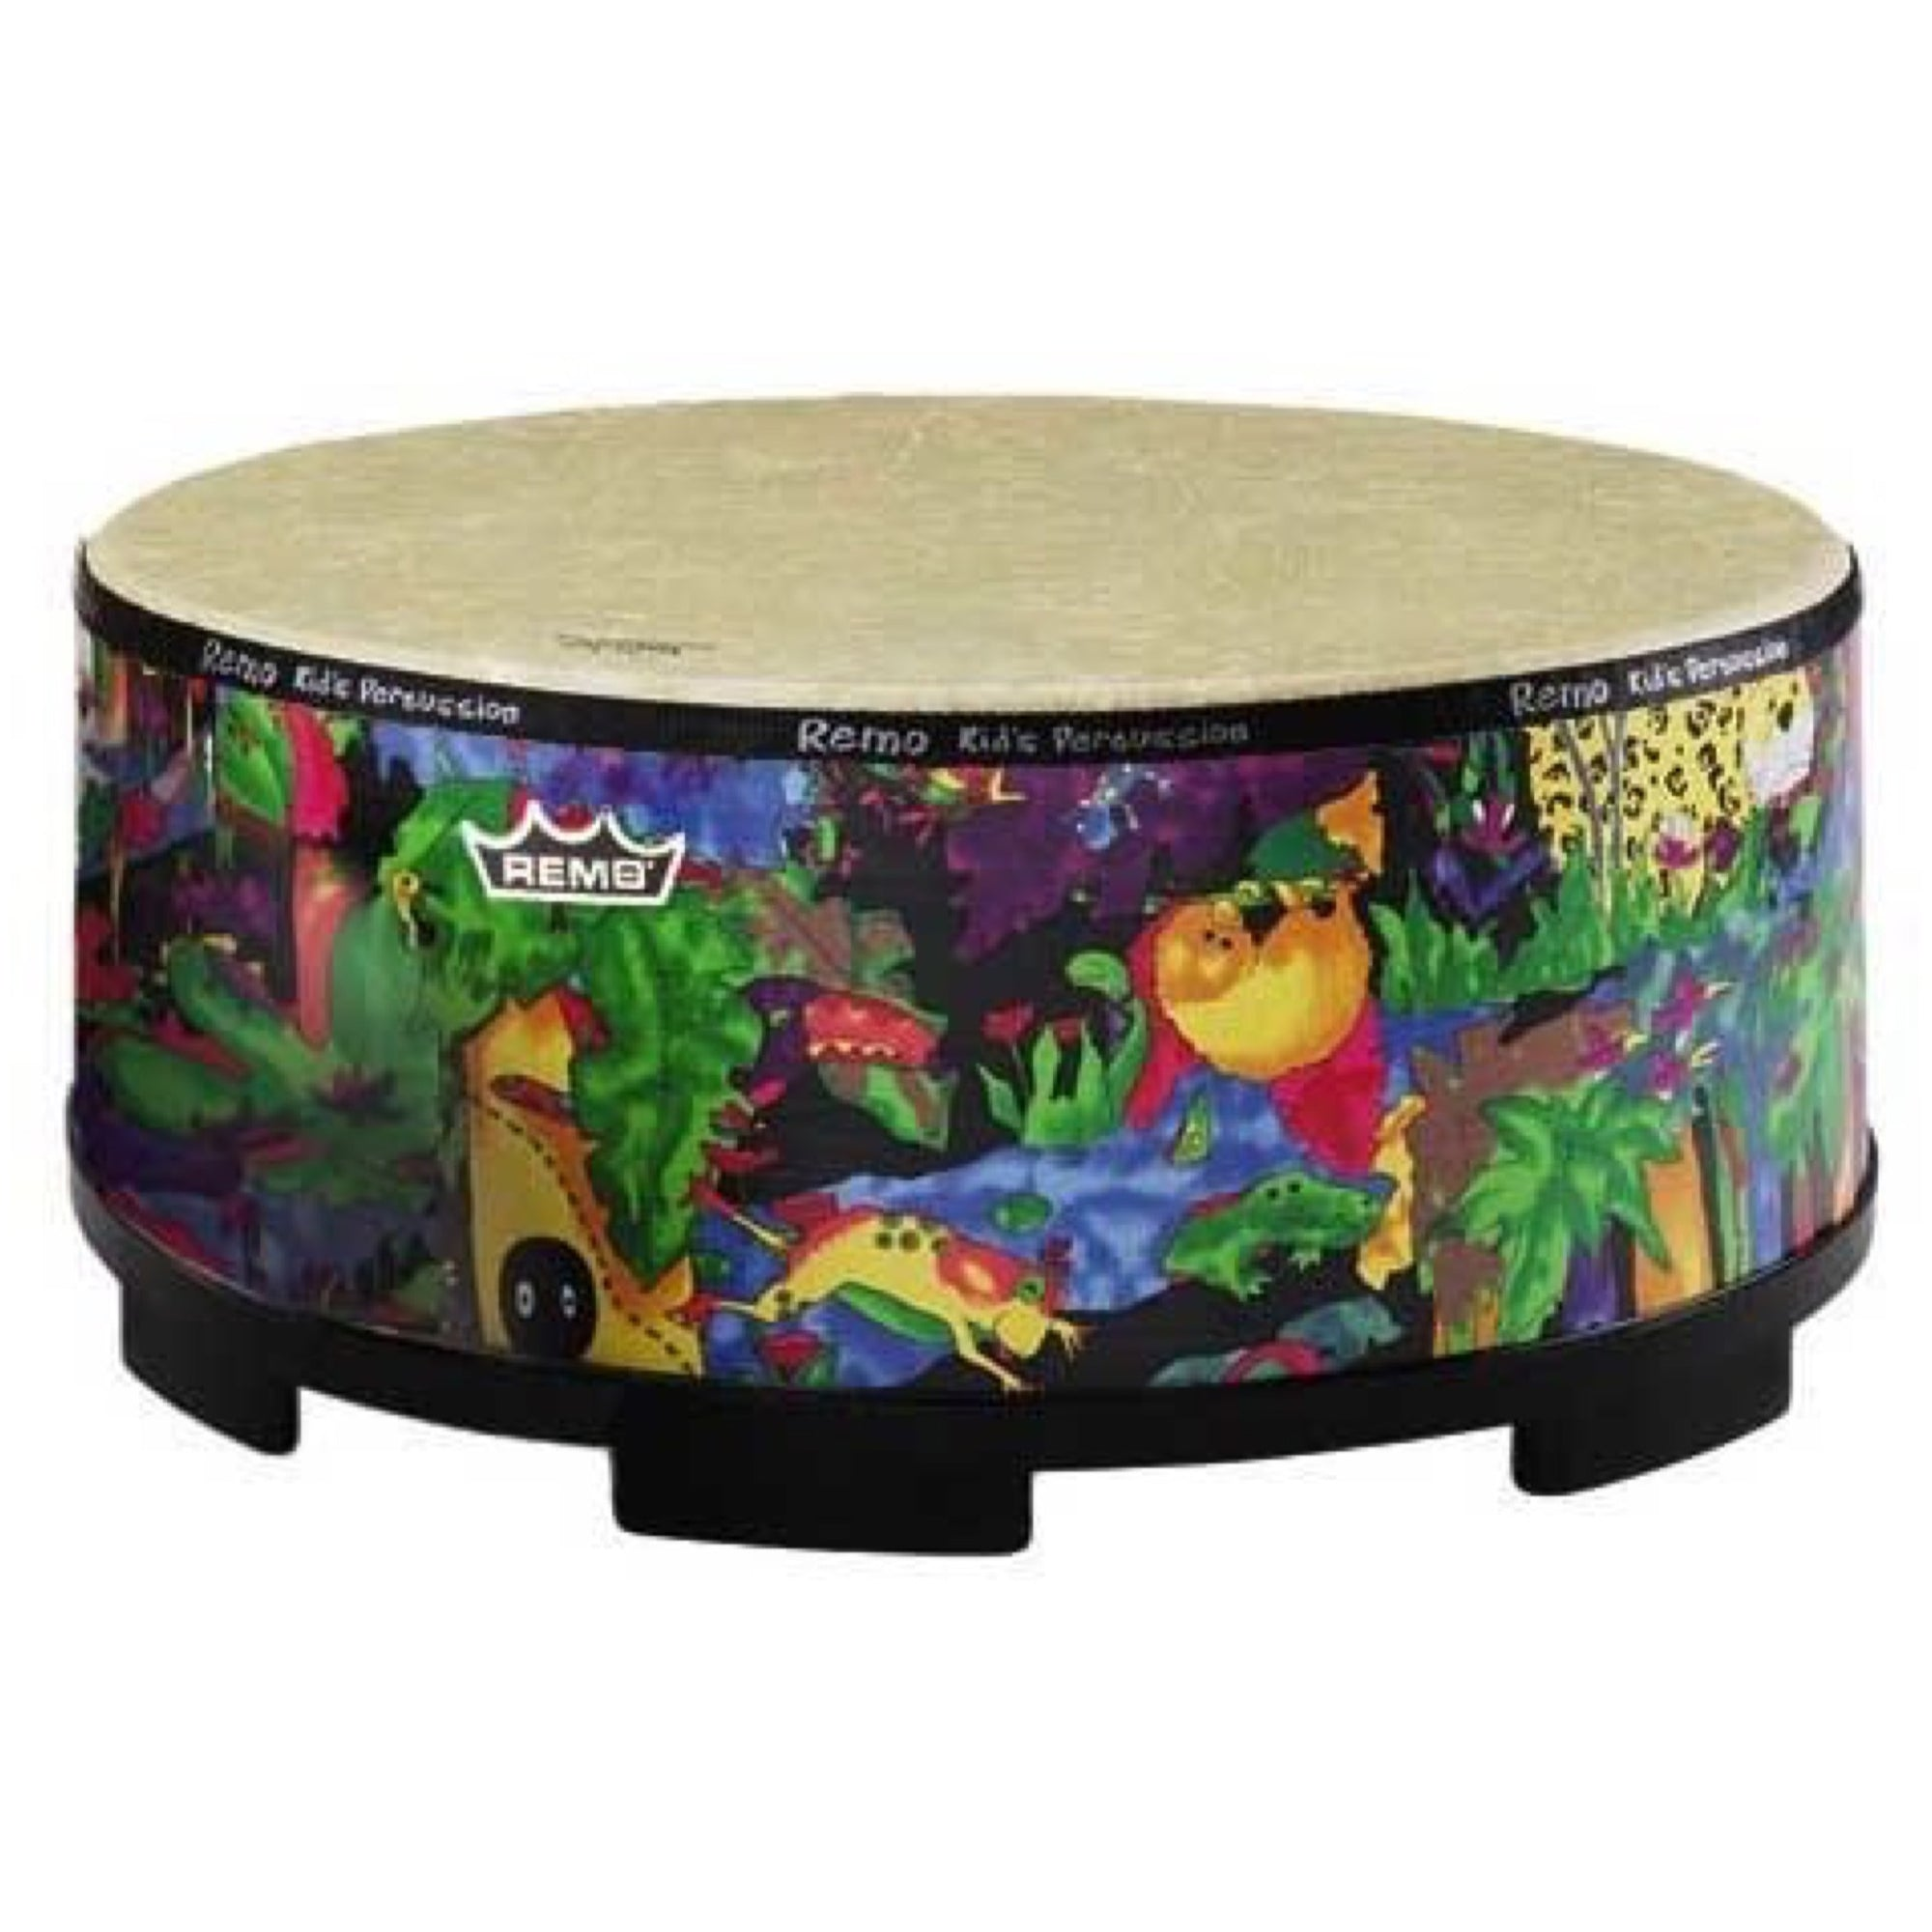 Remo Kids Percussion Gathering Drum, KD-5822-01, 22 Inch